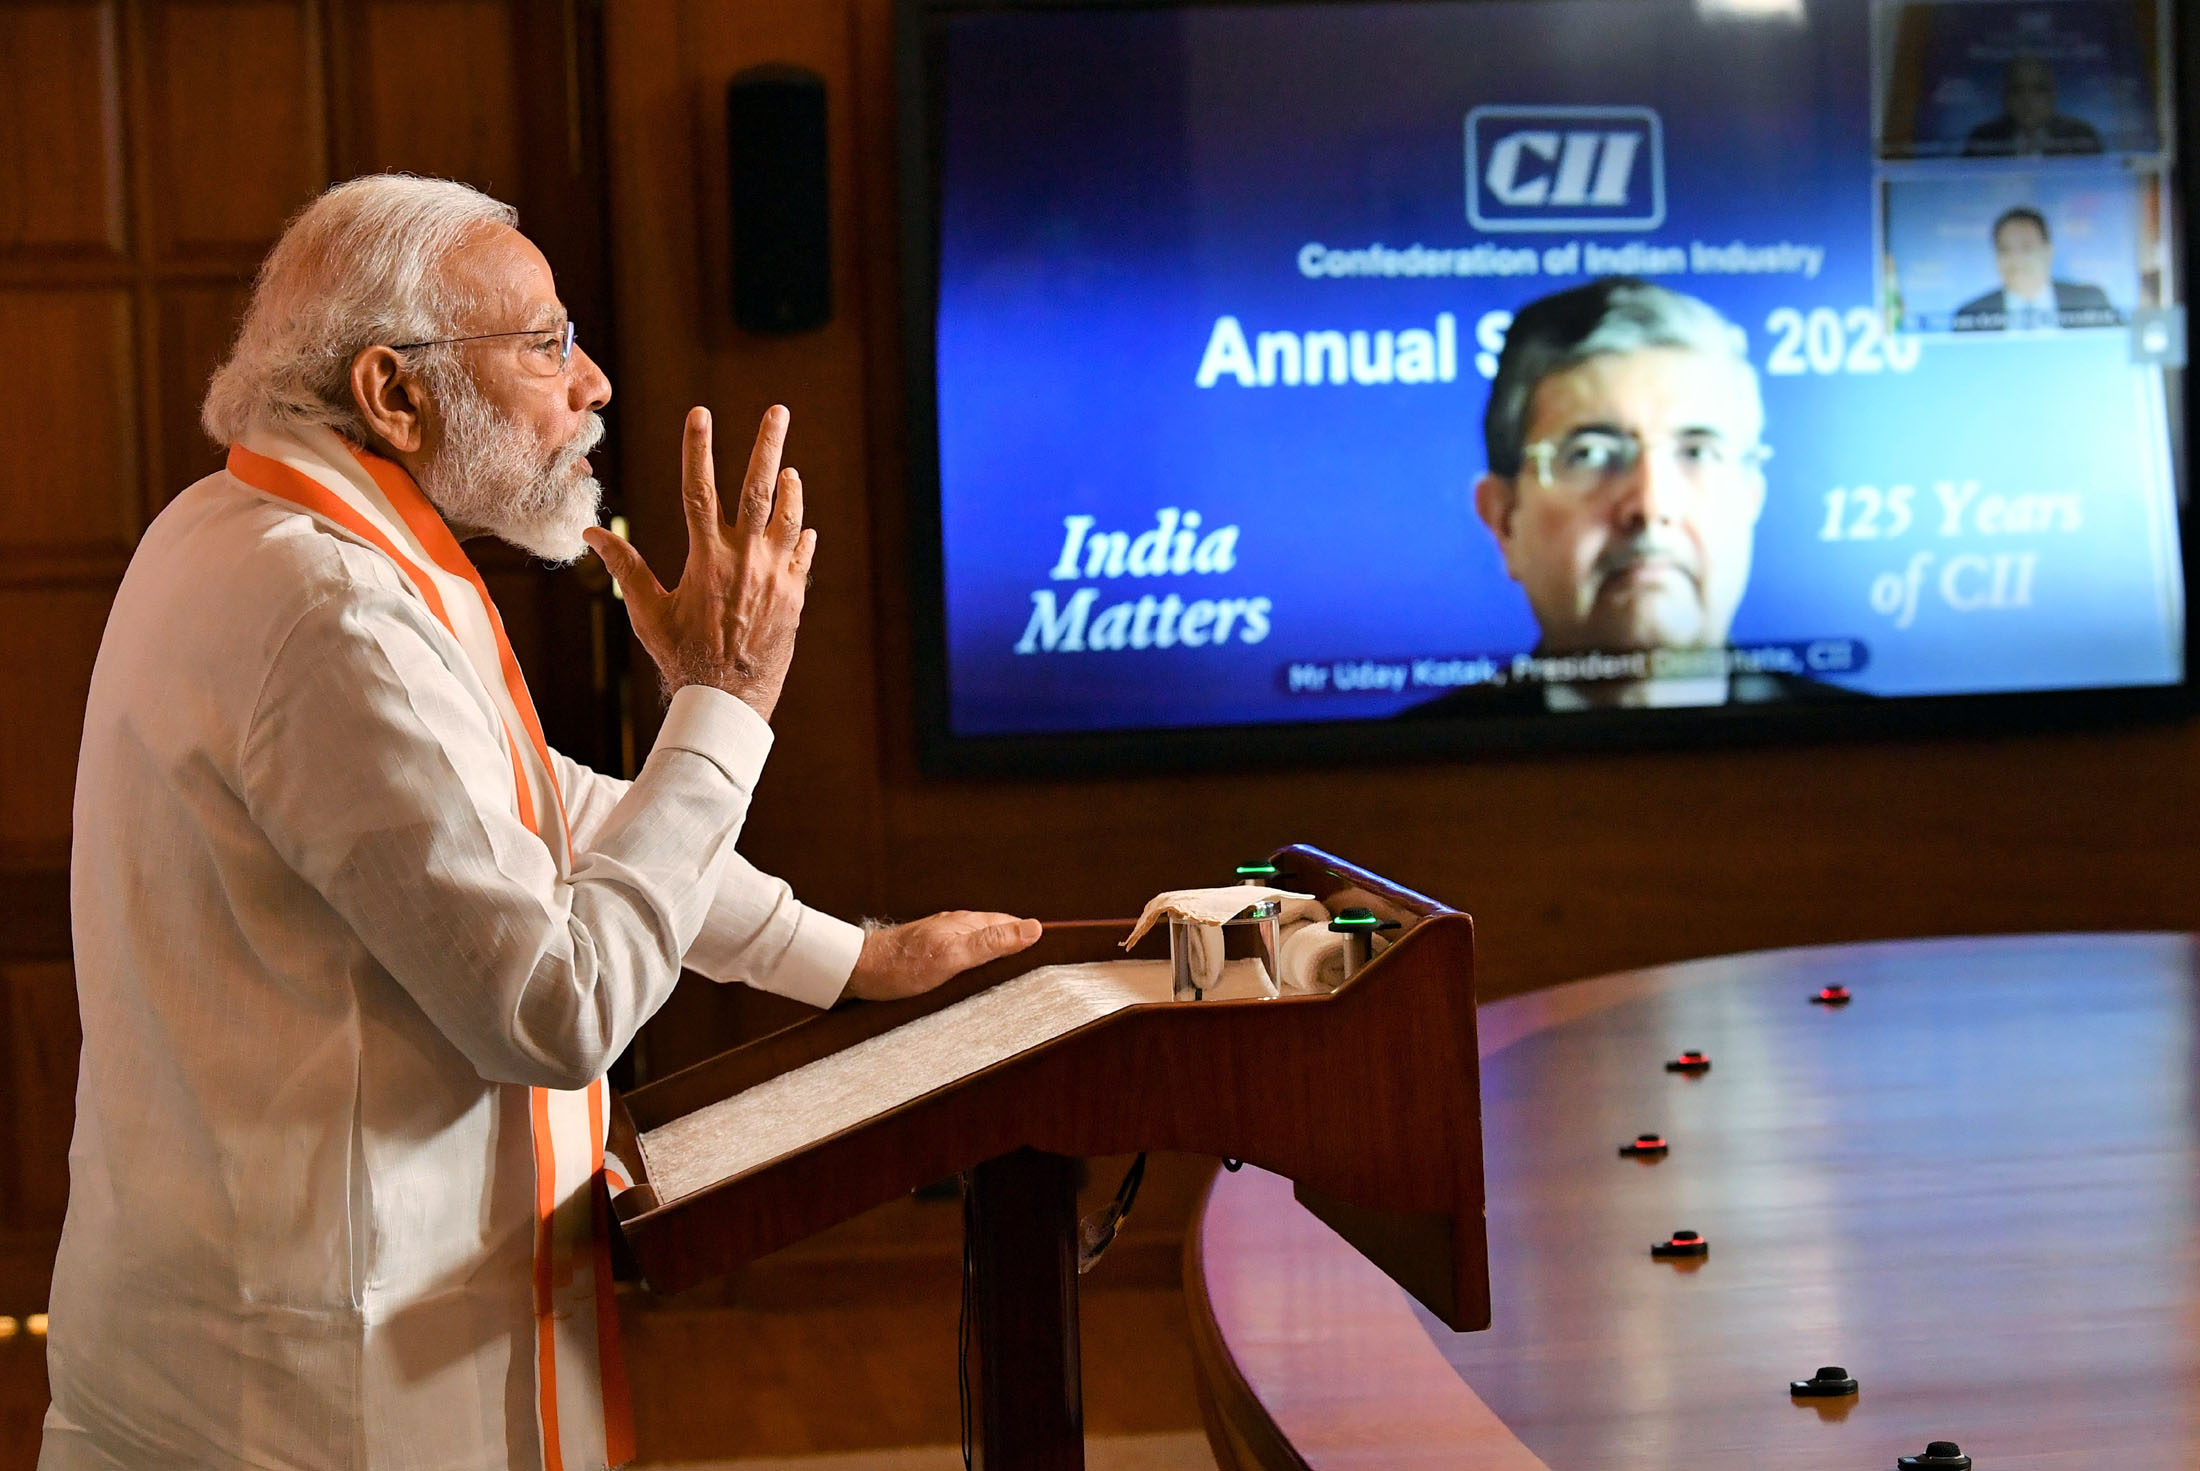 The Prime Minister, Shri Narendra Modi addressing the CII Annual Session - 2020 via video conferencing, in New Delhi on June 02, 2020.